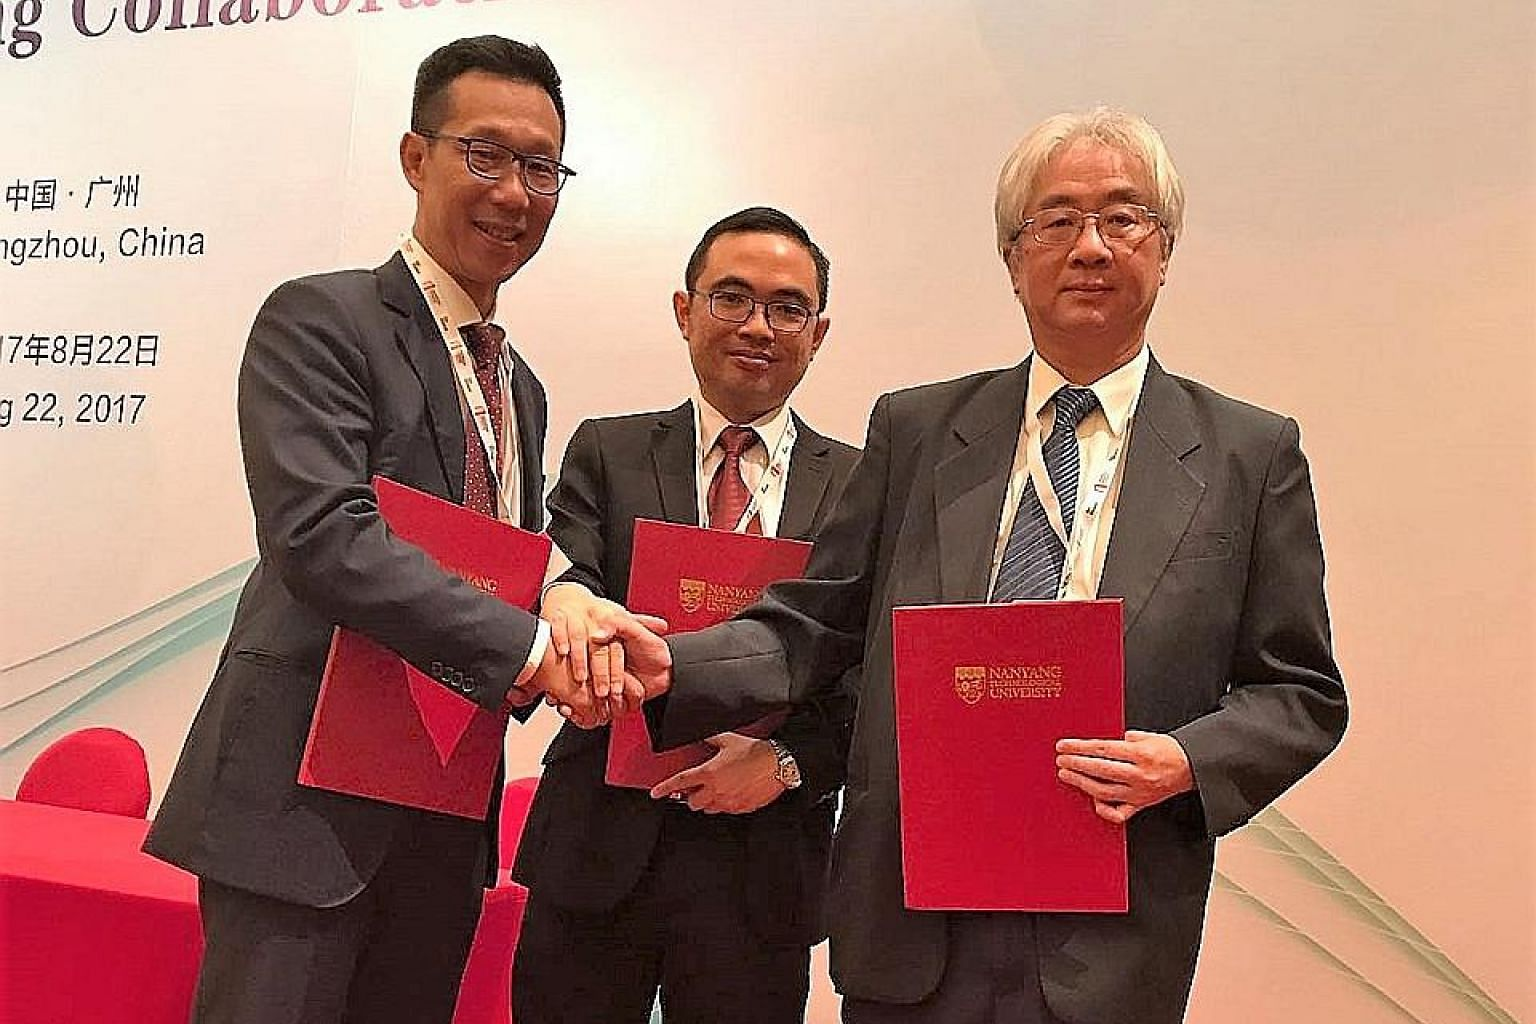 Among those who inked agreements at the eighth Singapore- Guangdong Collaboration Council meeting in Guangzhou yesterday were (from left) TechBridge Ventures' chairman, Dr Lim Jui, and its chief executive, Mr Ho Voon Yee, and Mr Leung Wah Kan, chief